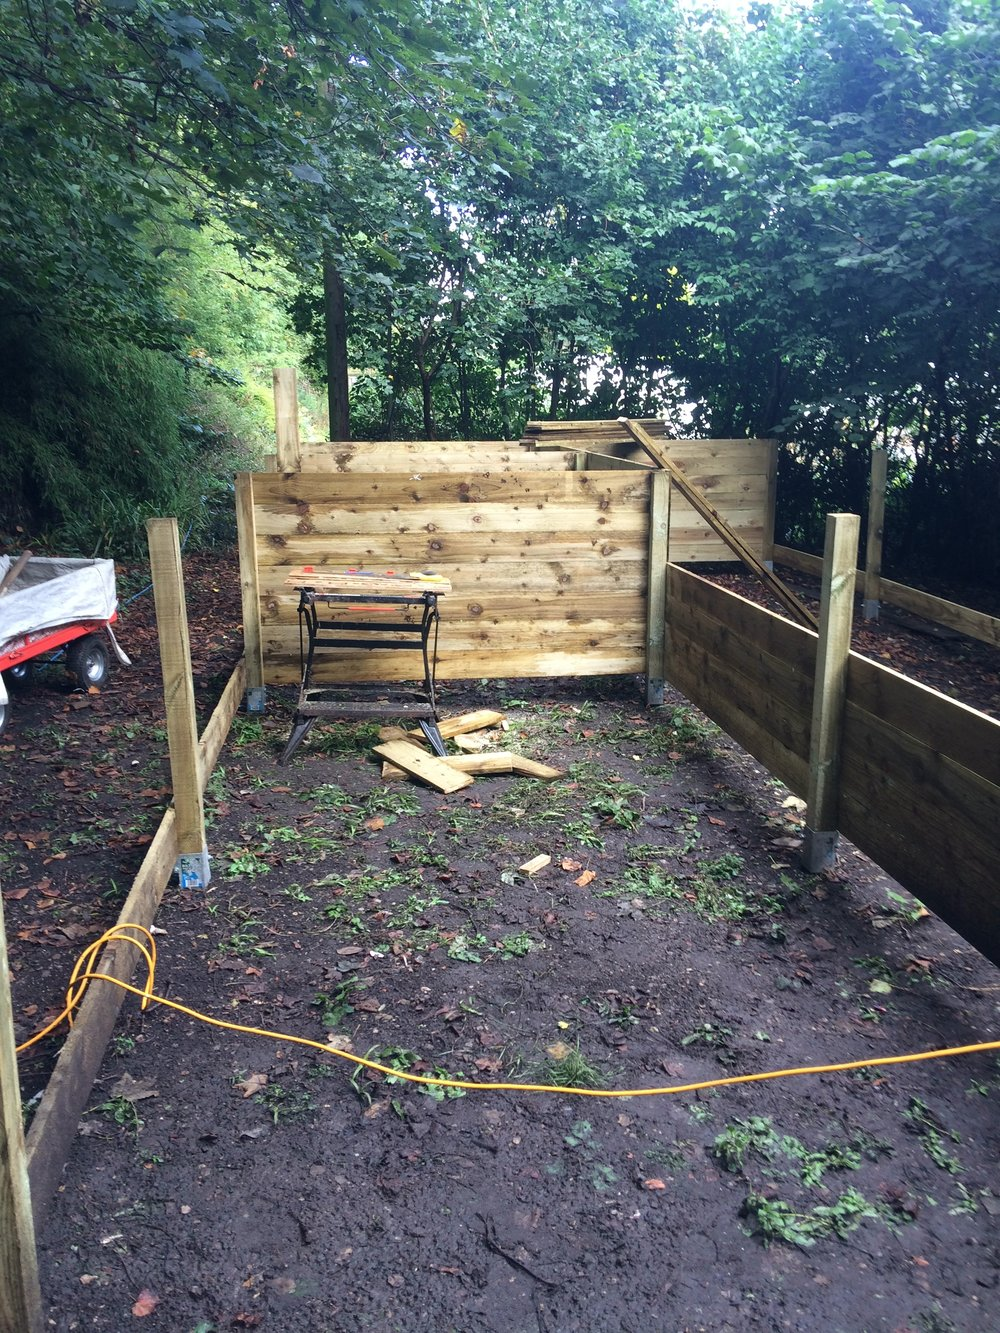 Composting boxes - work in progress